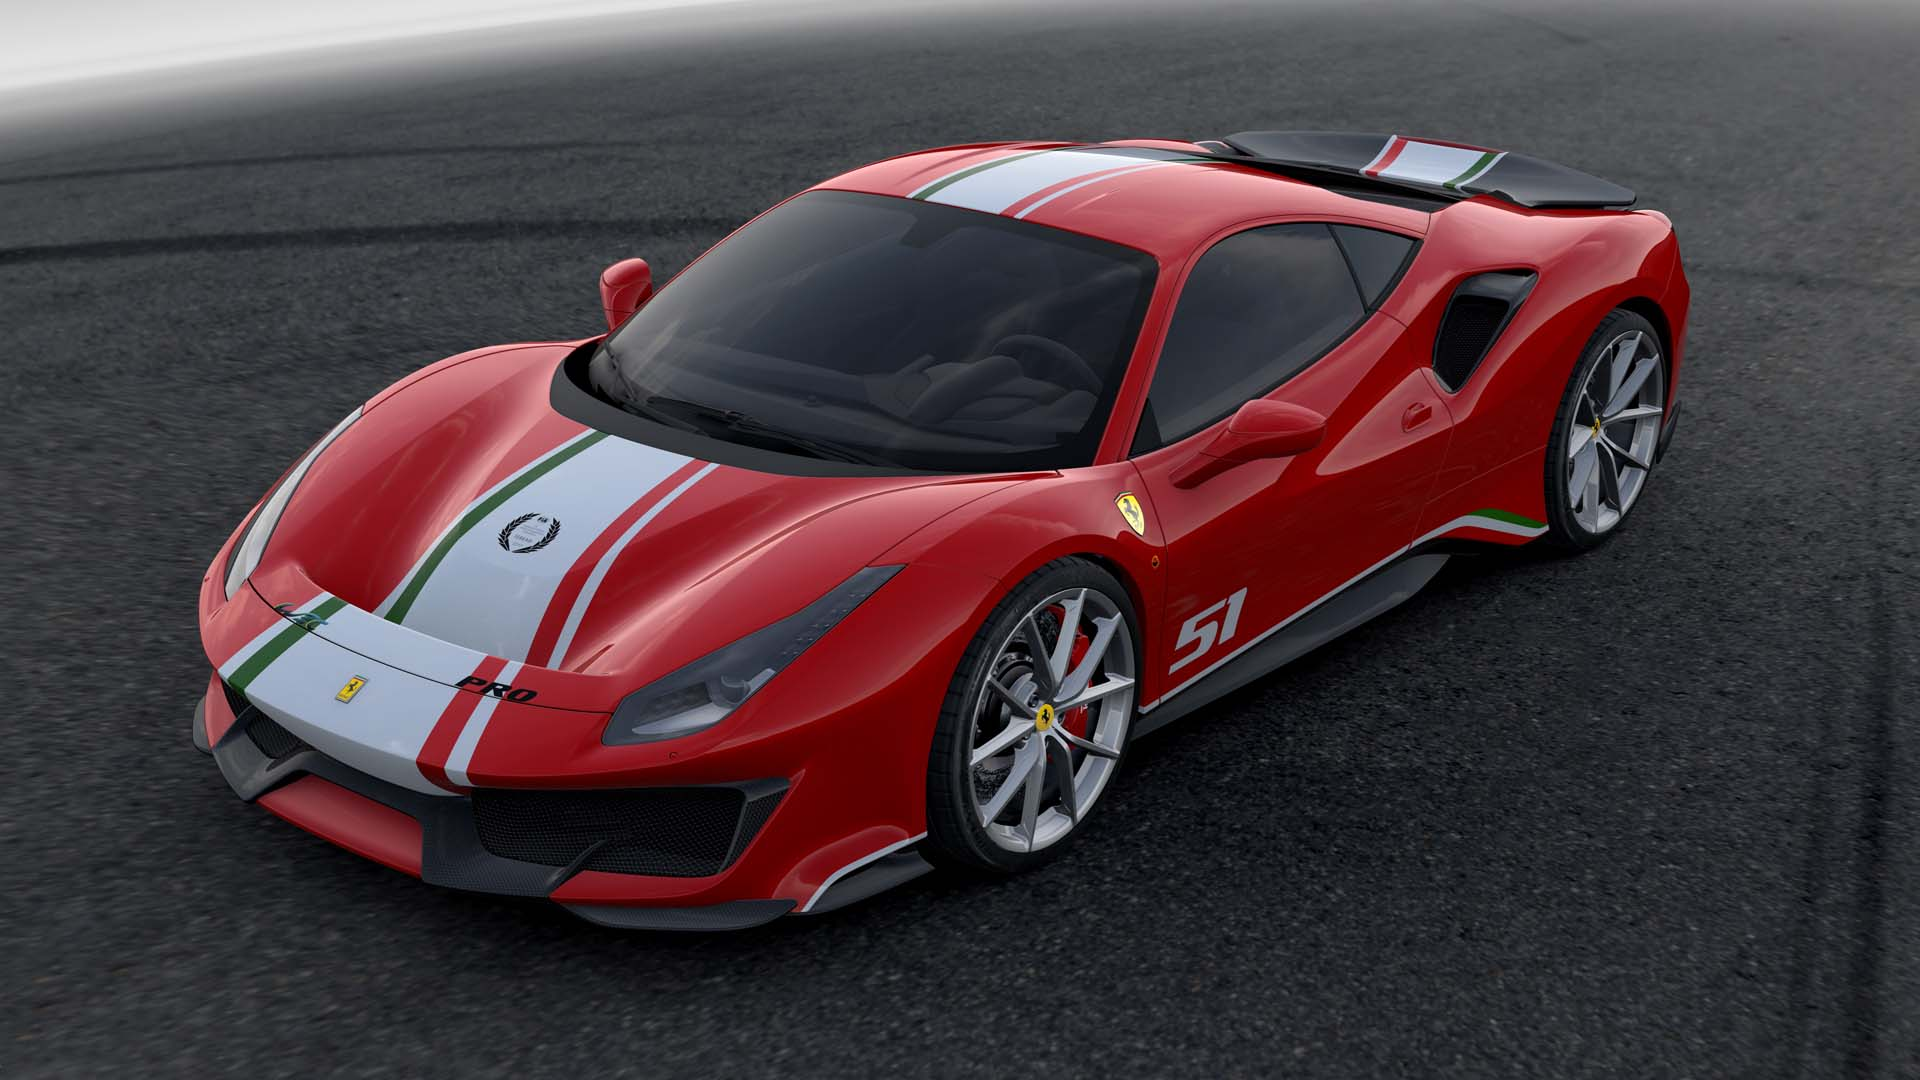 Racing For Pinks Ferrari 488 Pista Piloti Ferrari Only Offered To Customer Racers